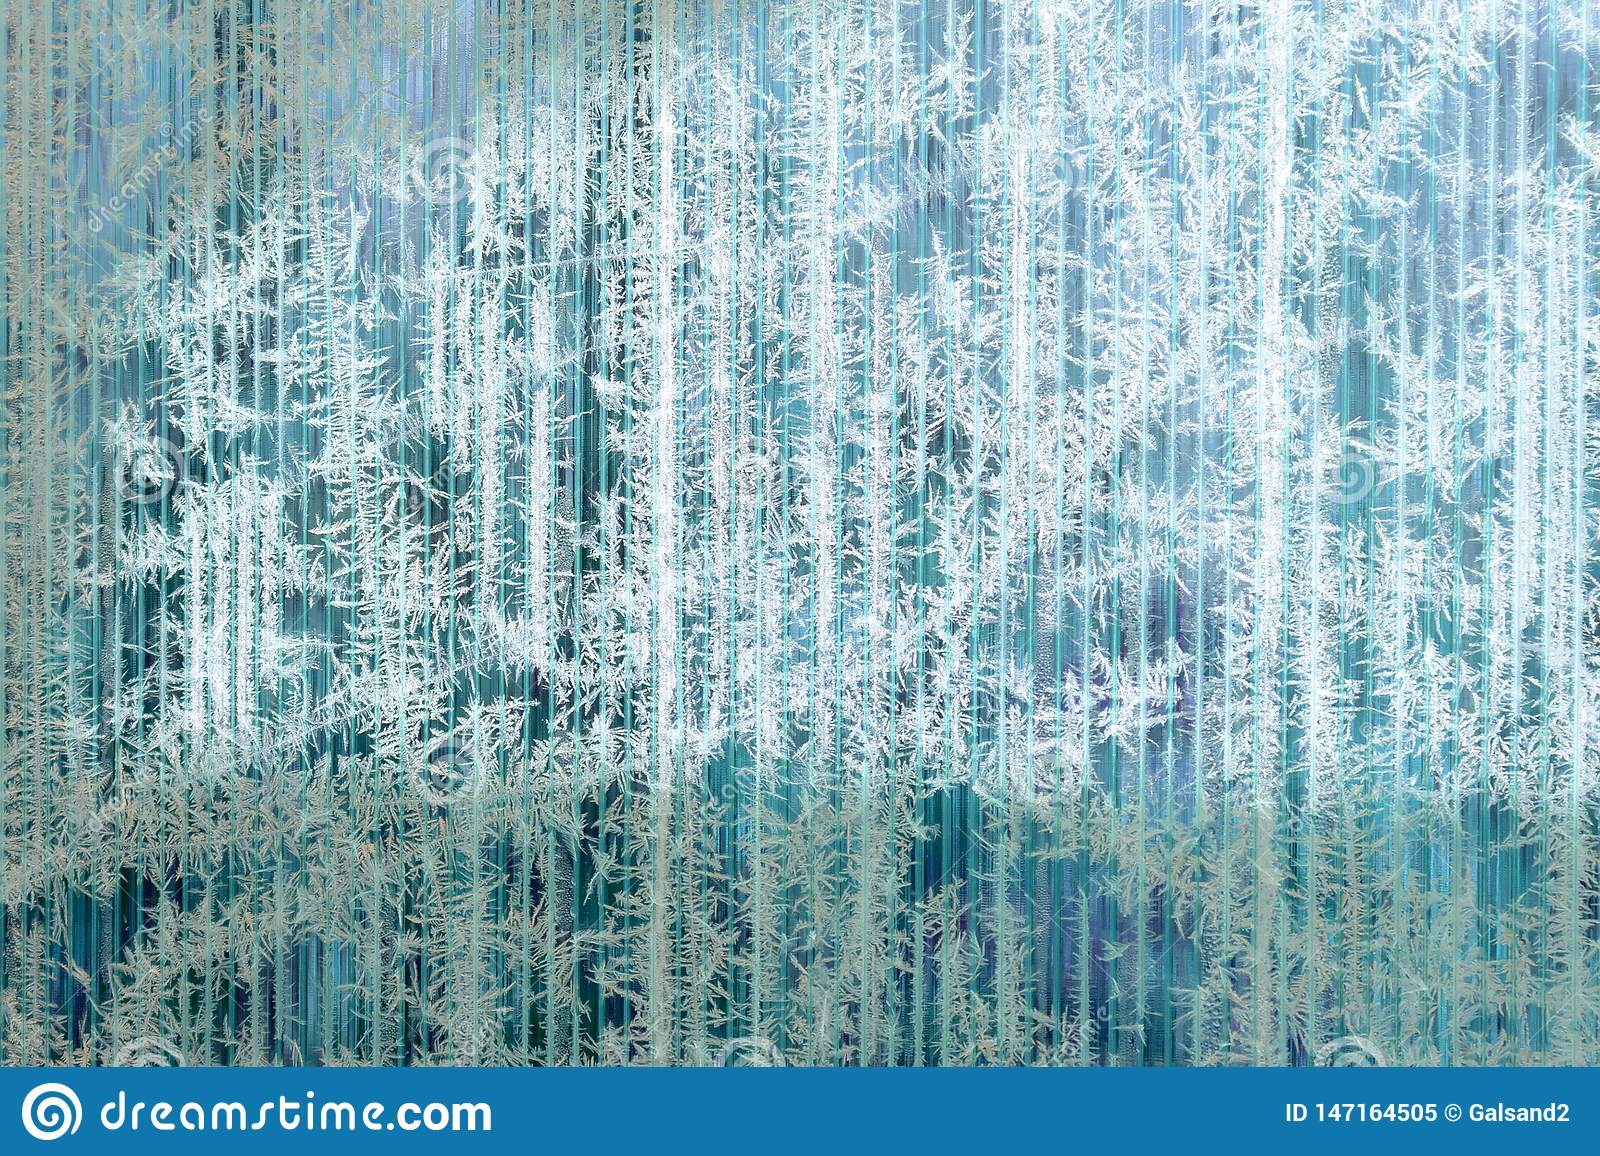 Frosty pattern of hoarfrost and snowflakes on striped glass, winter or Christmas background, texture